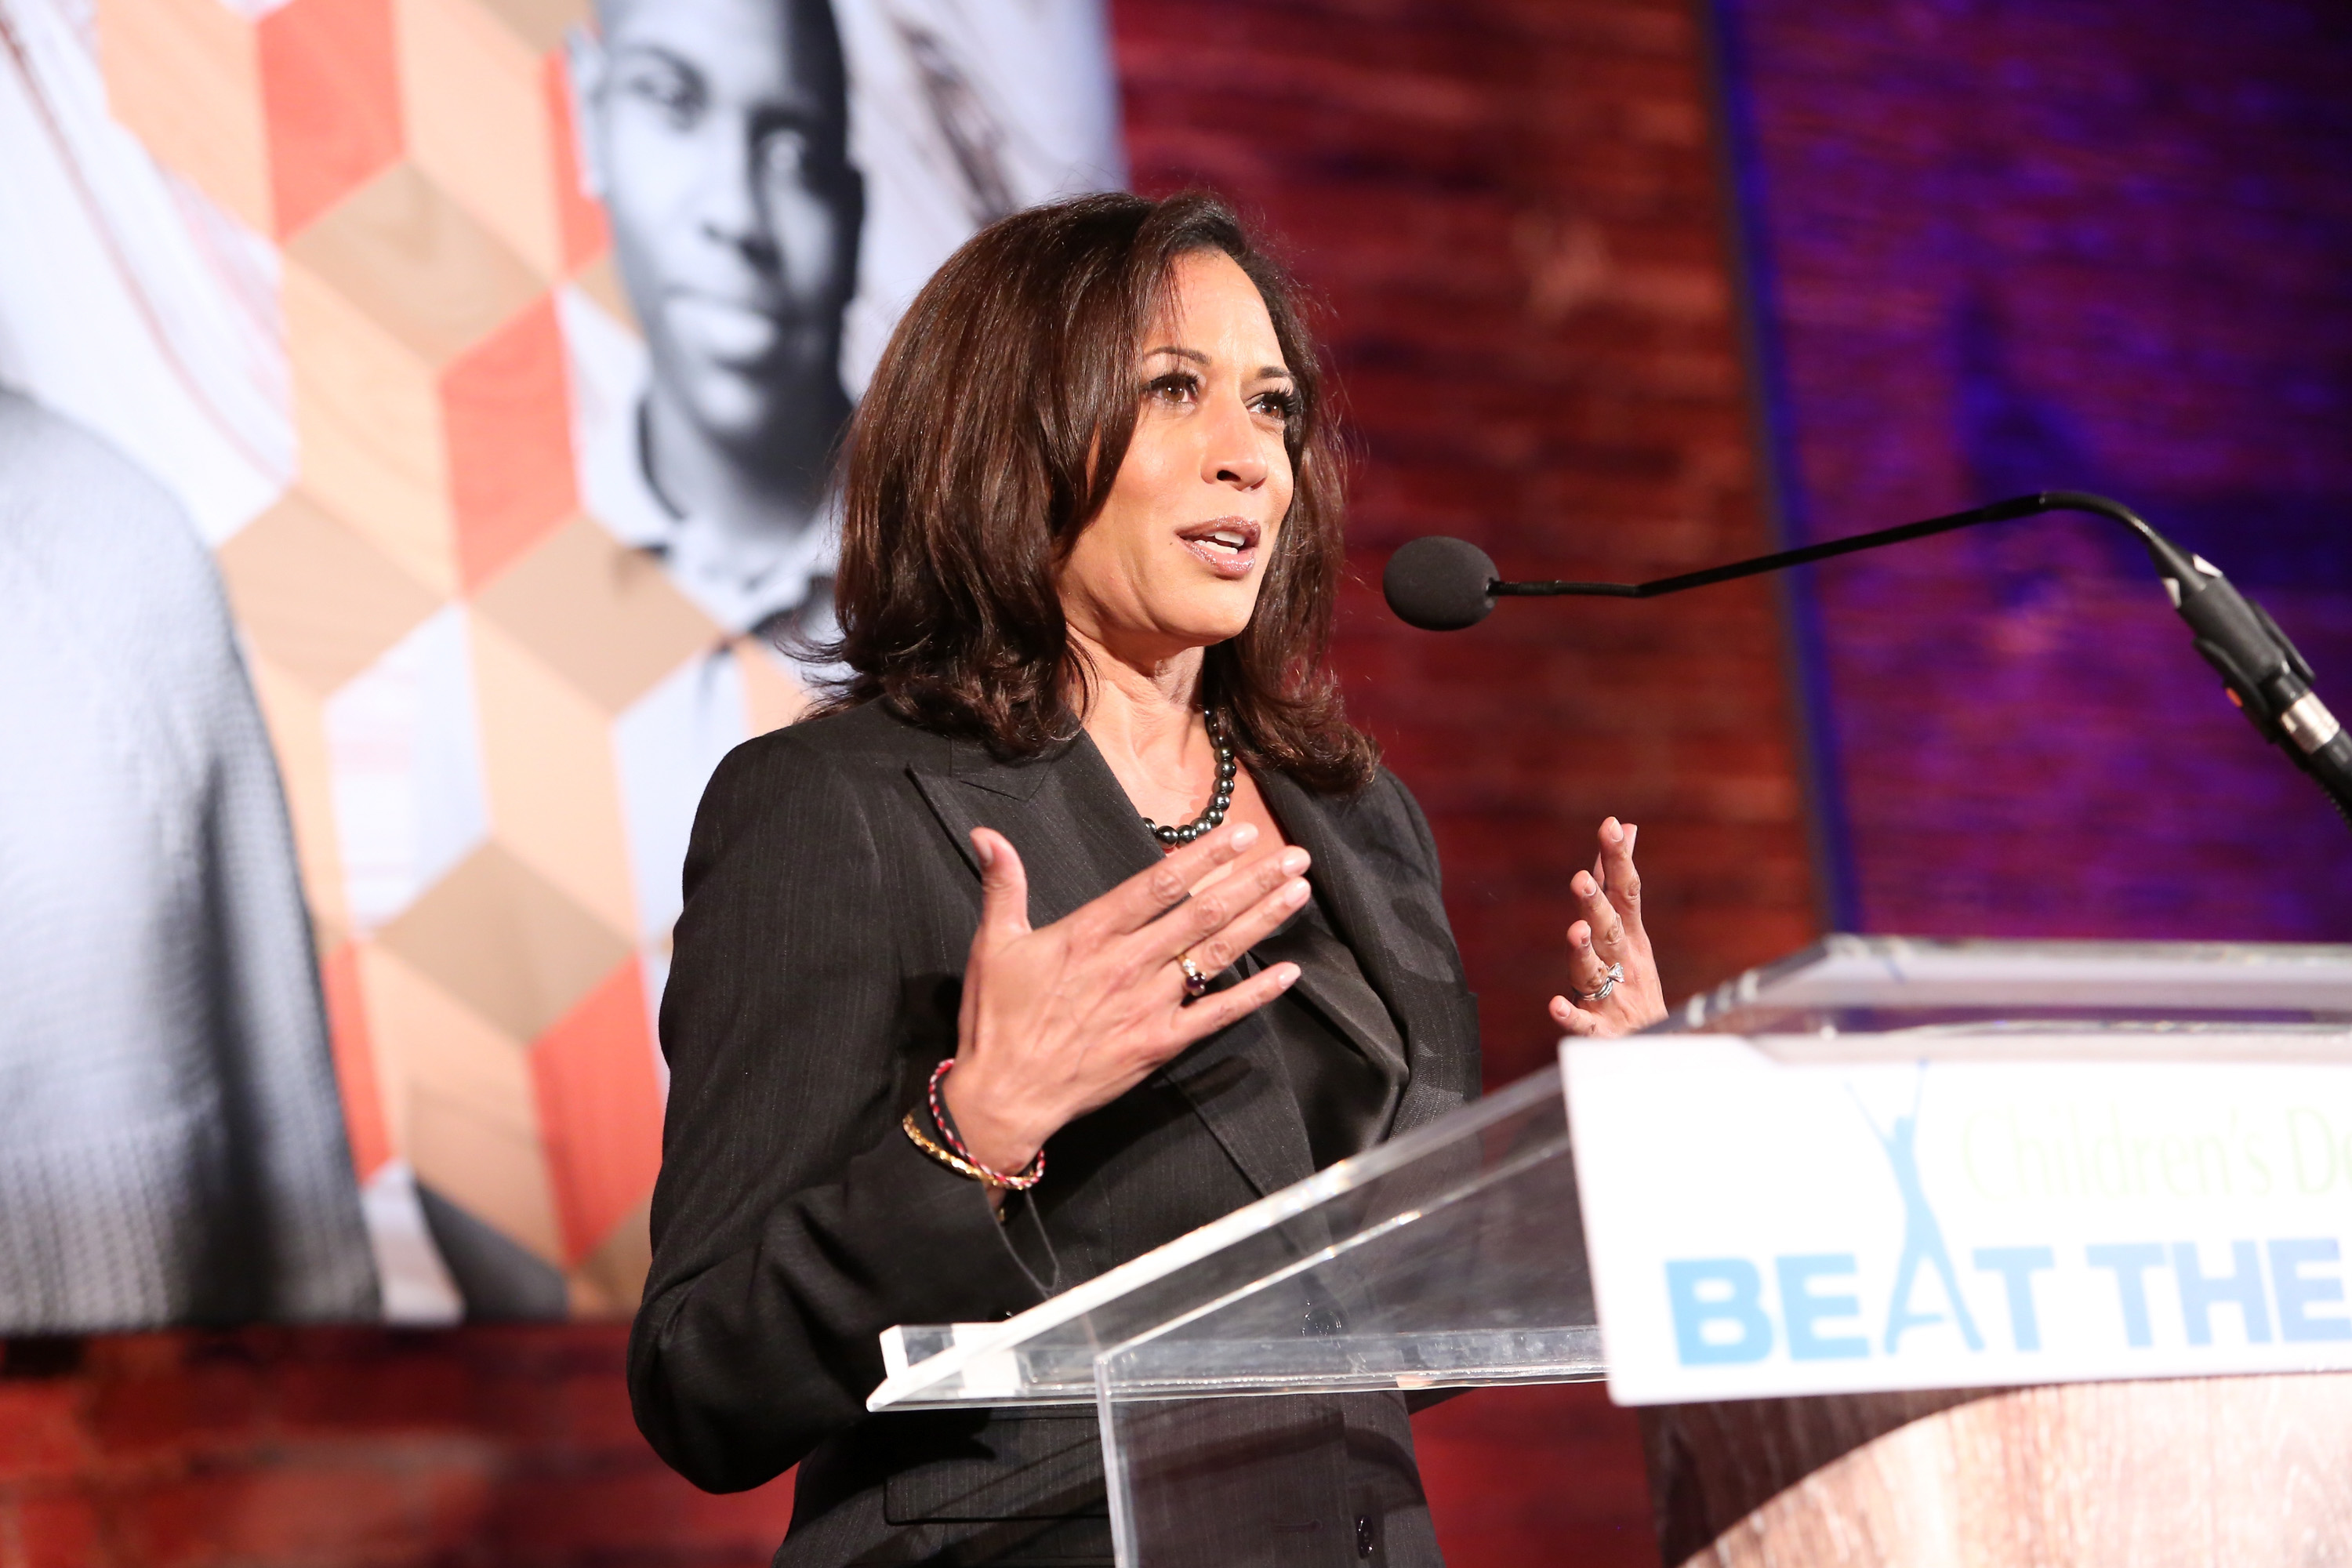 'The only poll that counts is Election Day, and nothing else matters,' Kamala Harris says.